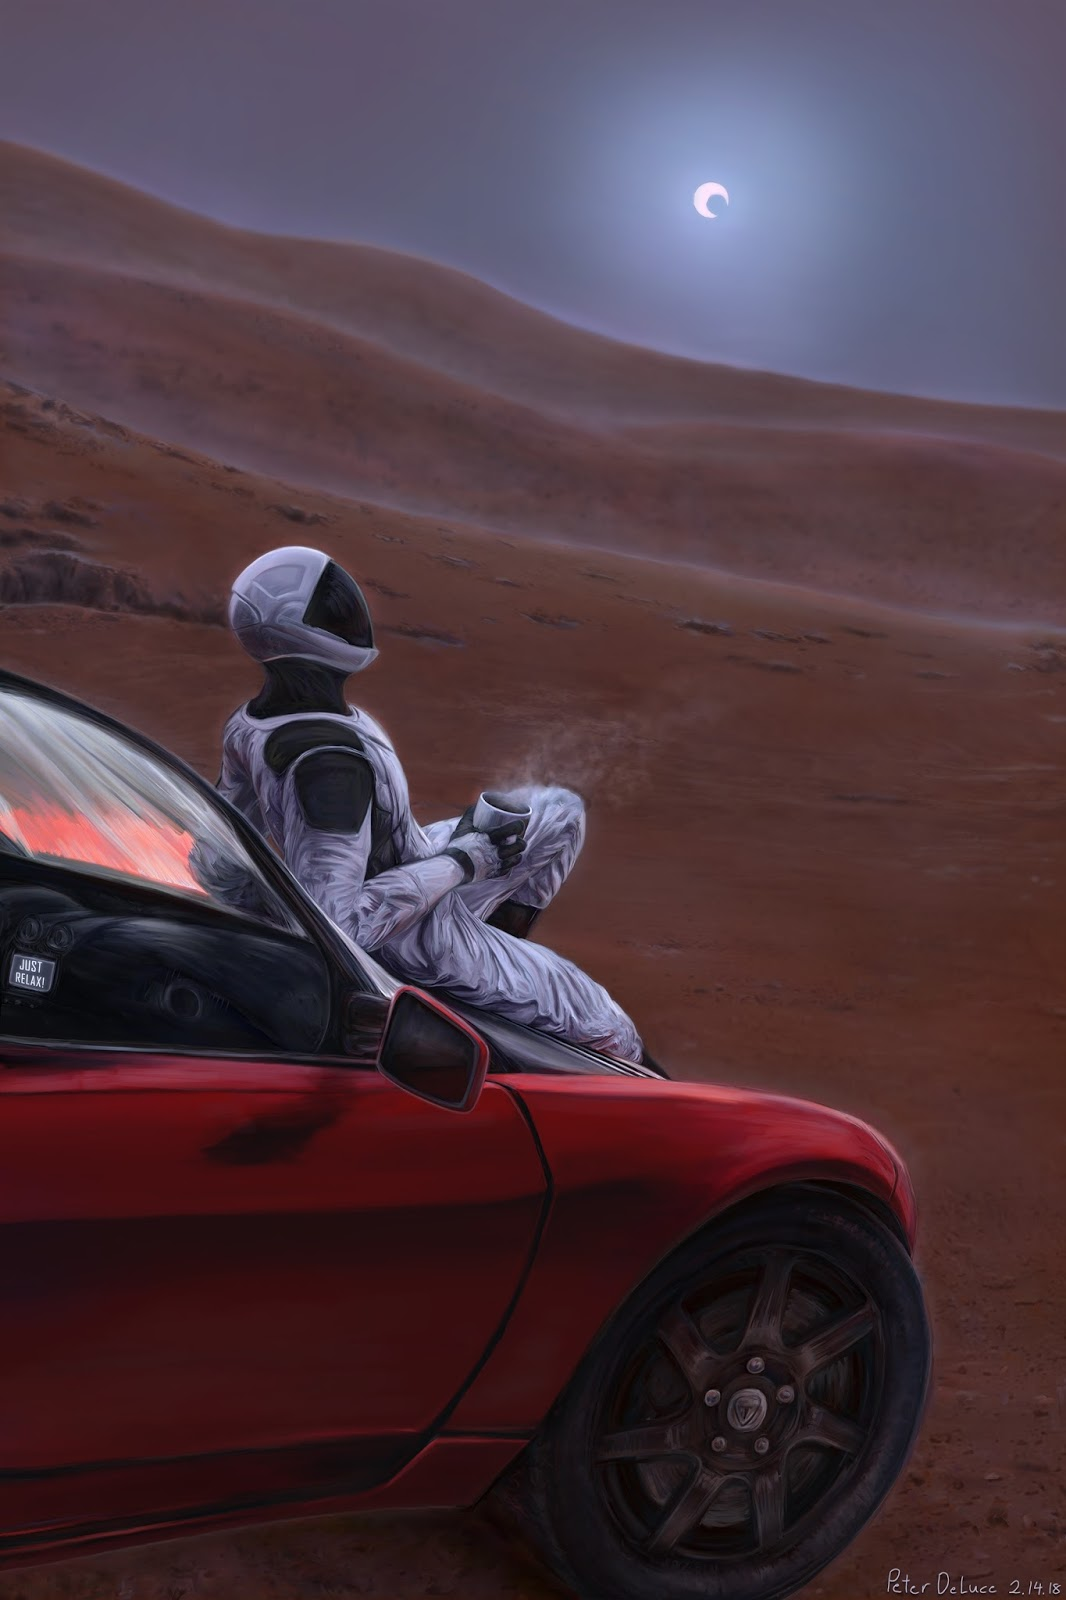 Starman with his Tesla Roadster on Mars by Peter DeLuce